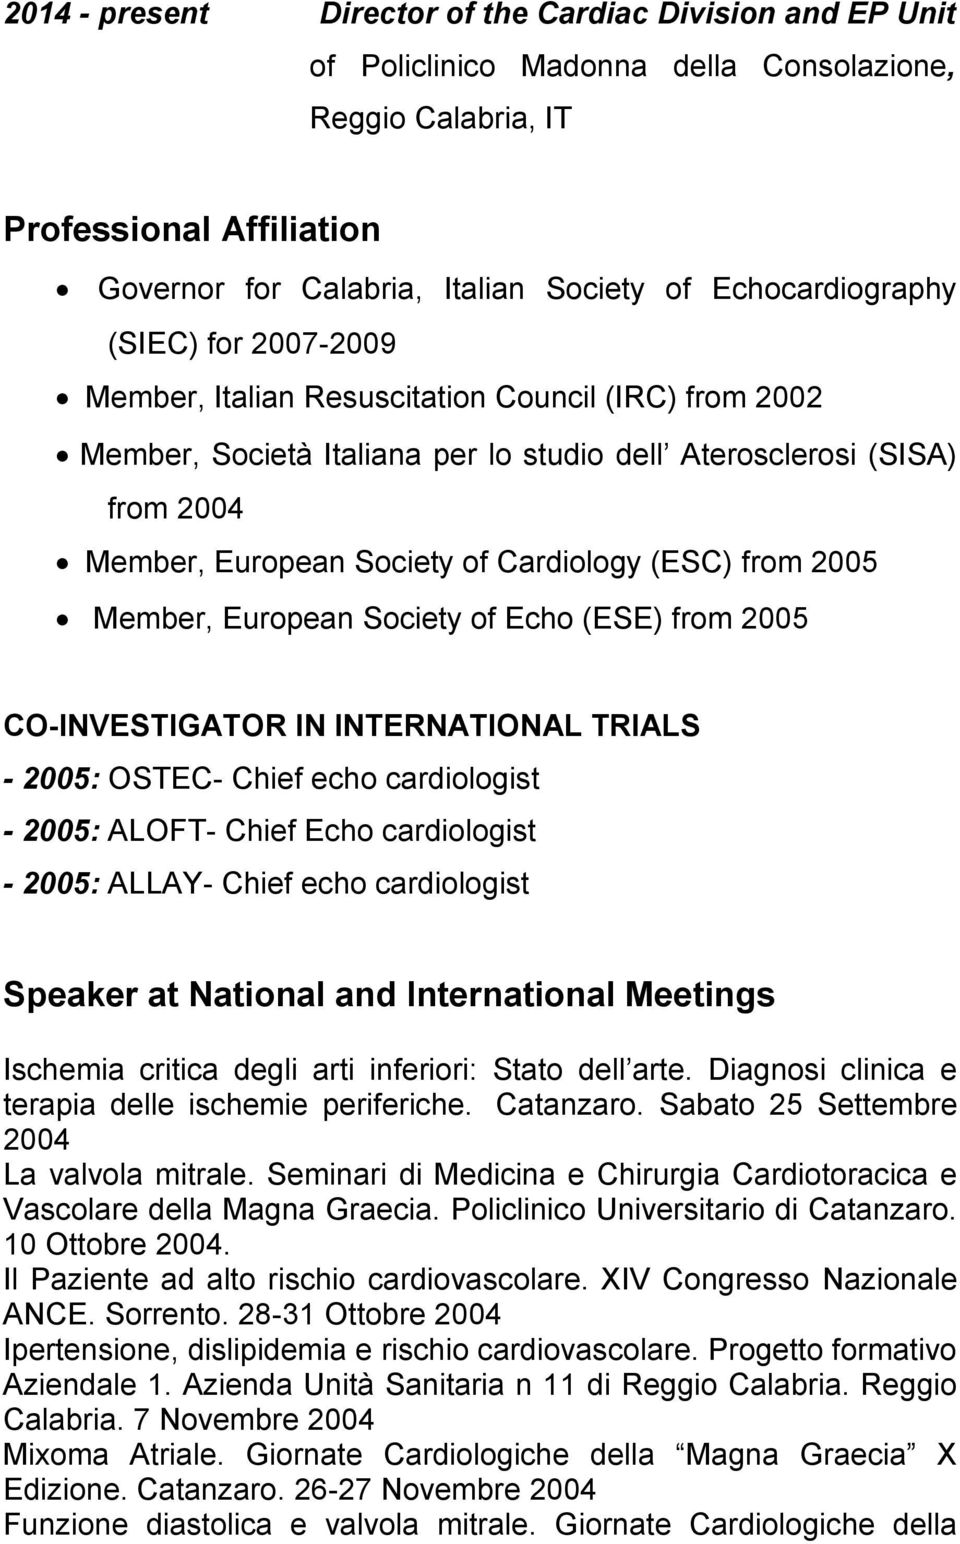 Cardiology (ESC) from 2005 Member, European Society of Echo (ESE) from 2005 CO-INVESTIGATOR IN INTERNATIONAL TRIALS - 2005: OSTEC- Chief echo cardiologist - 2005: ALOFT- Chief Echo cardiologist -